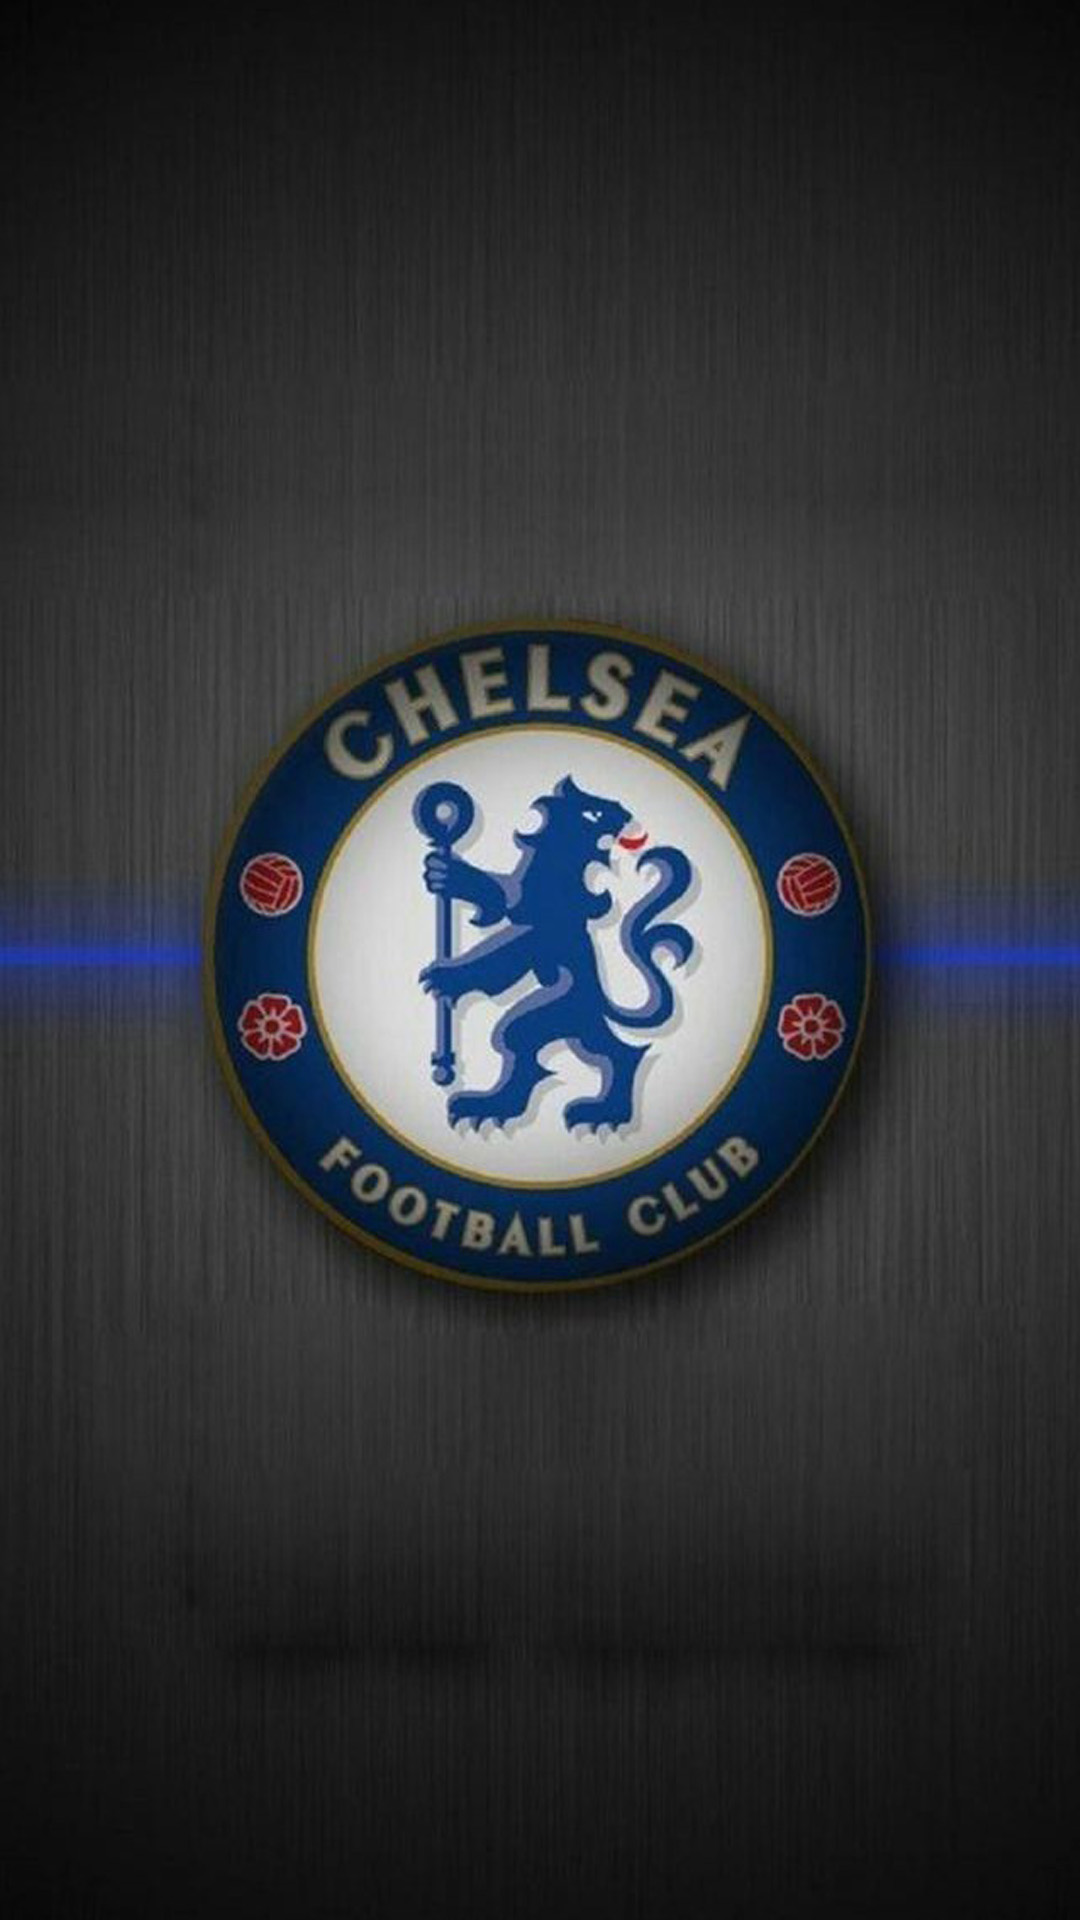 Wallpaper Of Love Quotes For Facebook Download Chelsea Fc Iphone Wallpaper Gallery